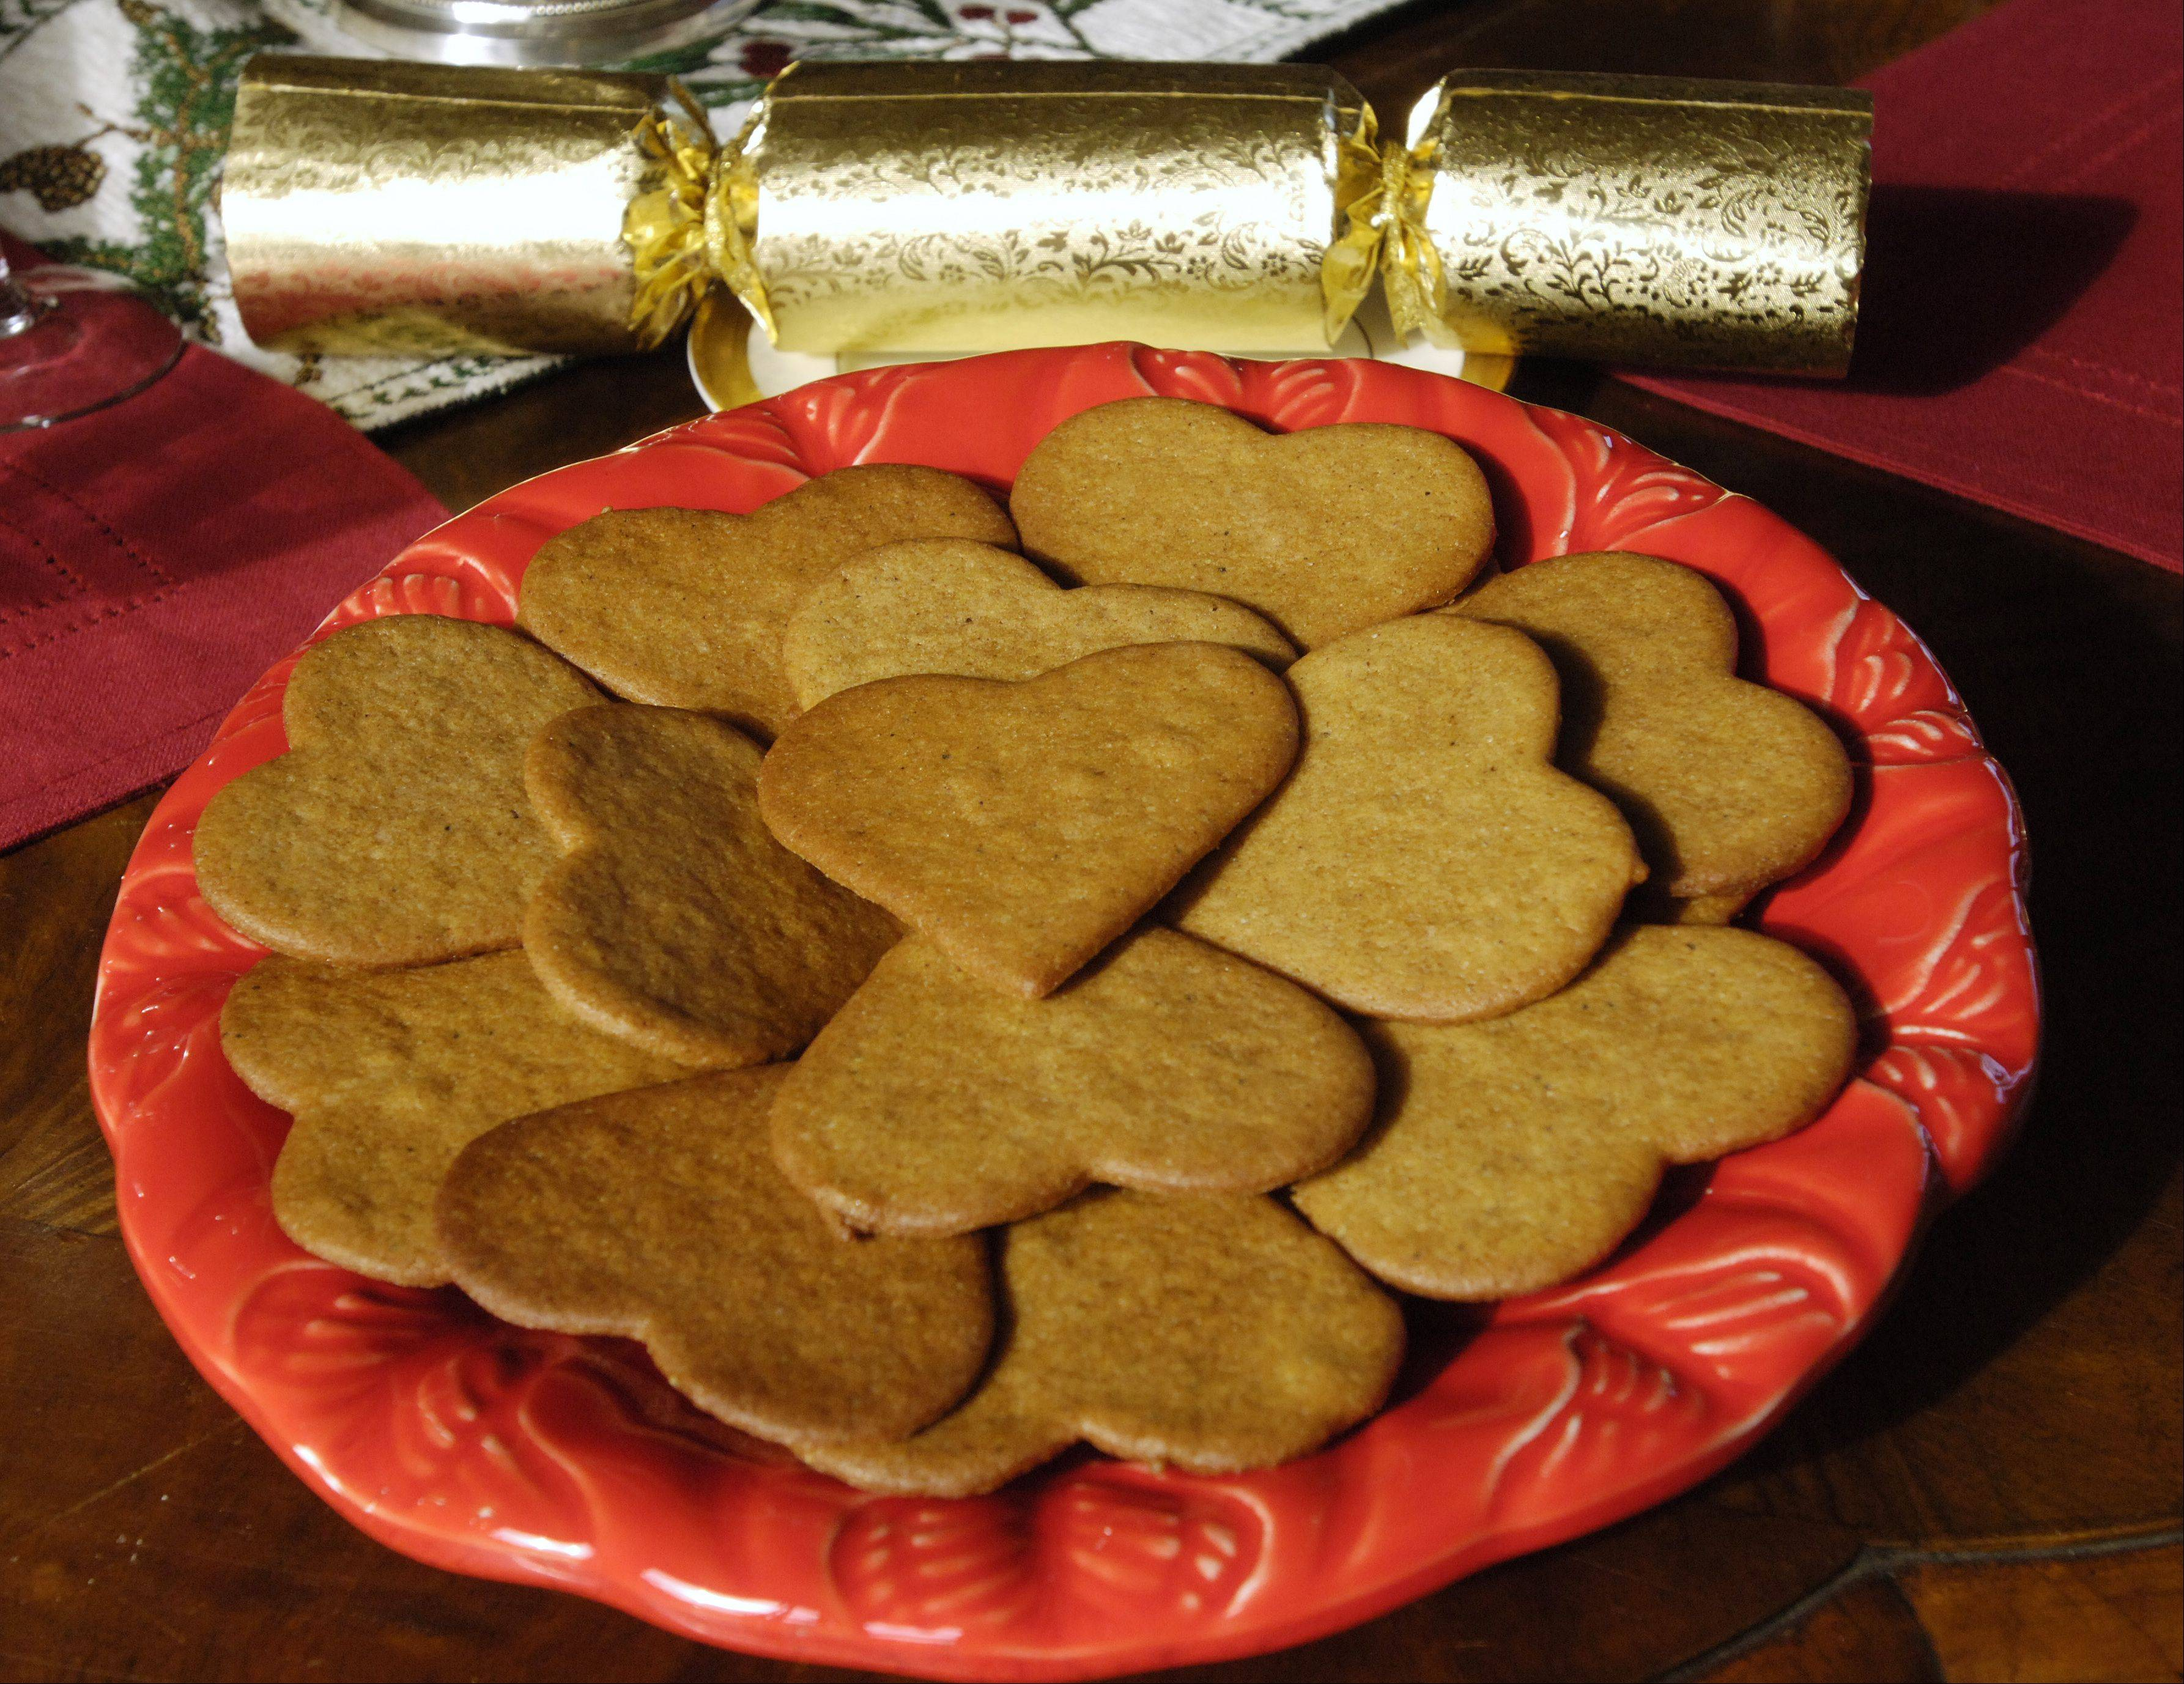 Pepparkakor, or ginger cookies, are among the traditional Swedish cookies baked at Christmastime.